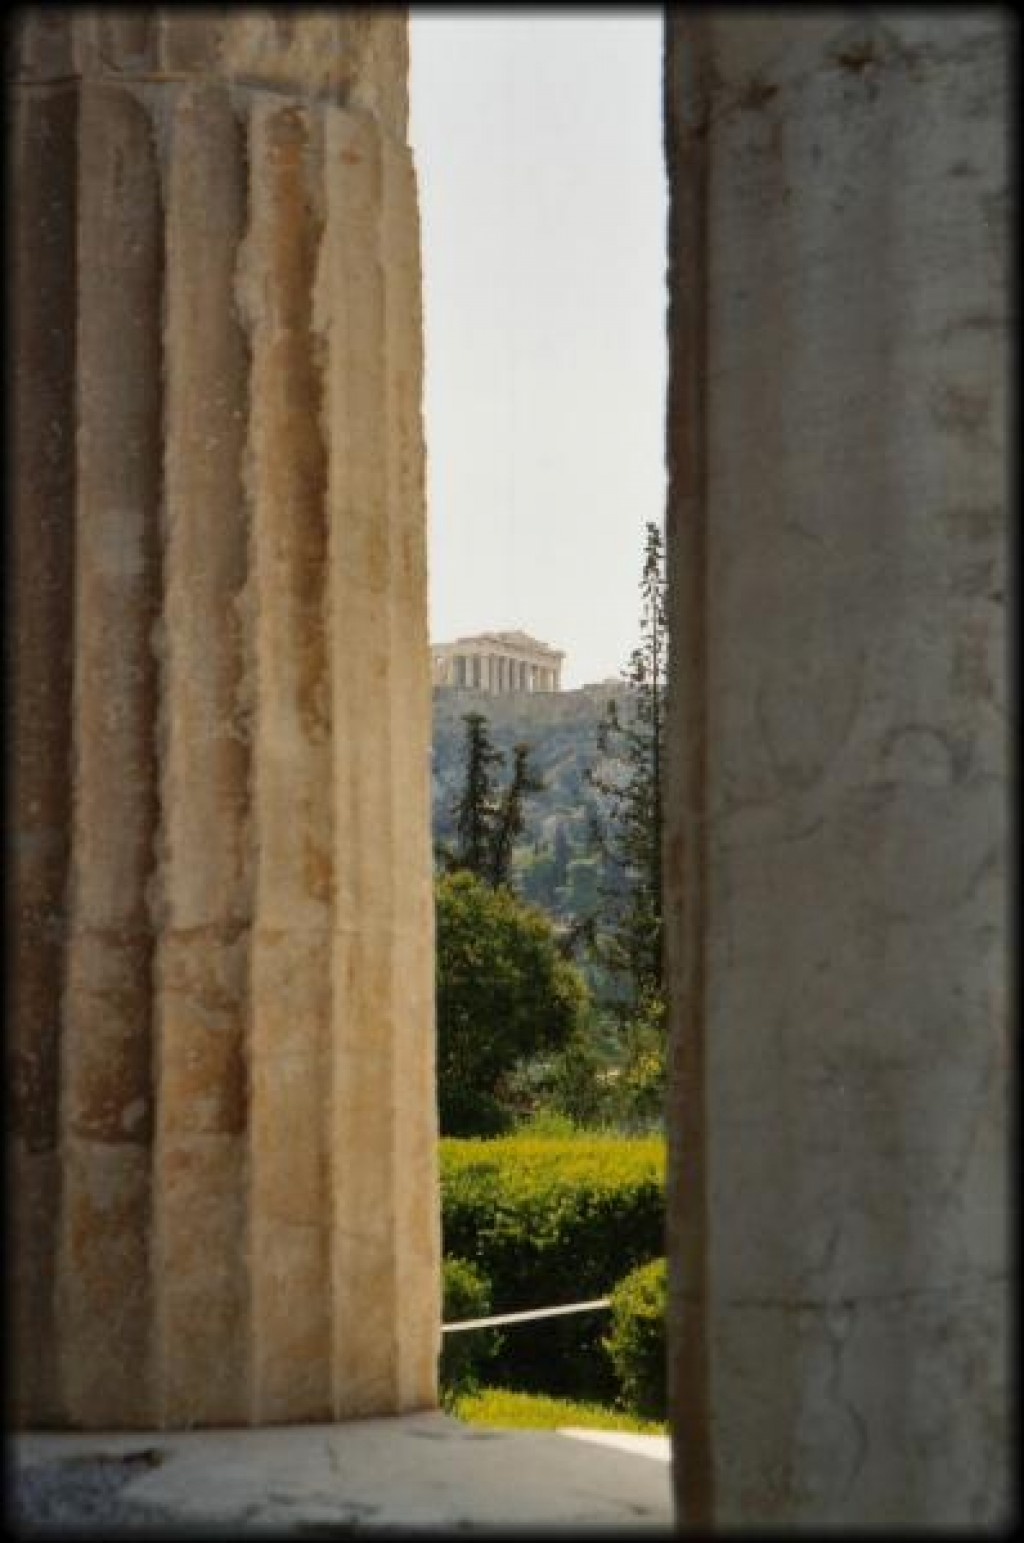 Peaking up at the Parthenon from the Ancient Agora below.